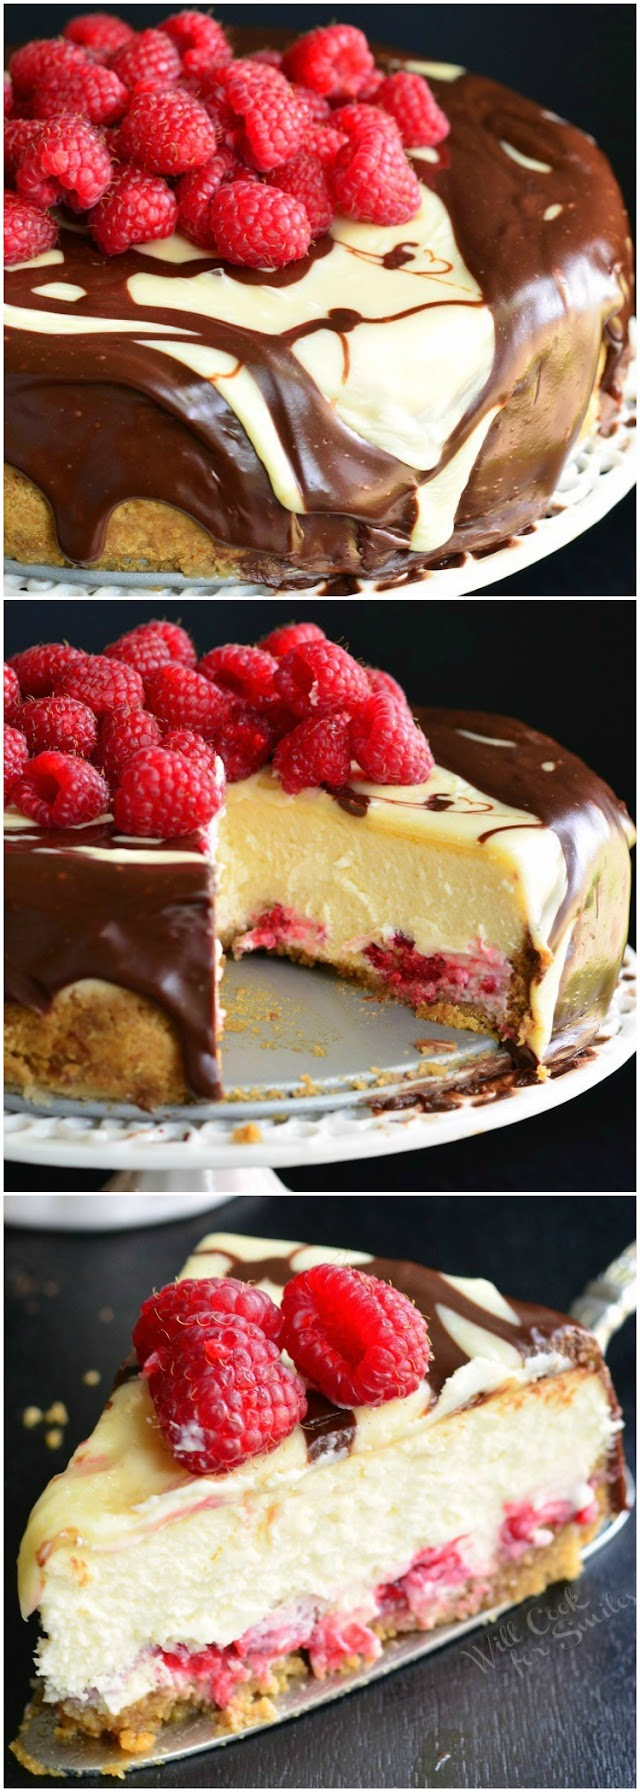 Double Chocolate Ganache and Raspberry Cheesecake Recipe